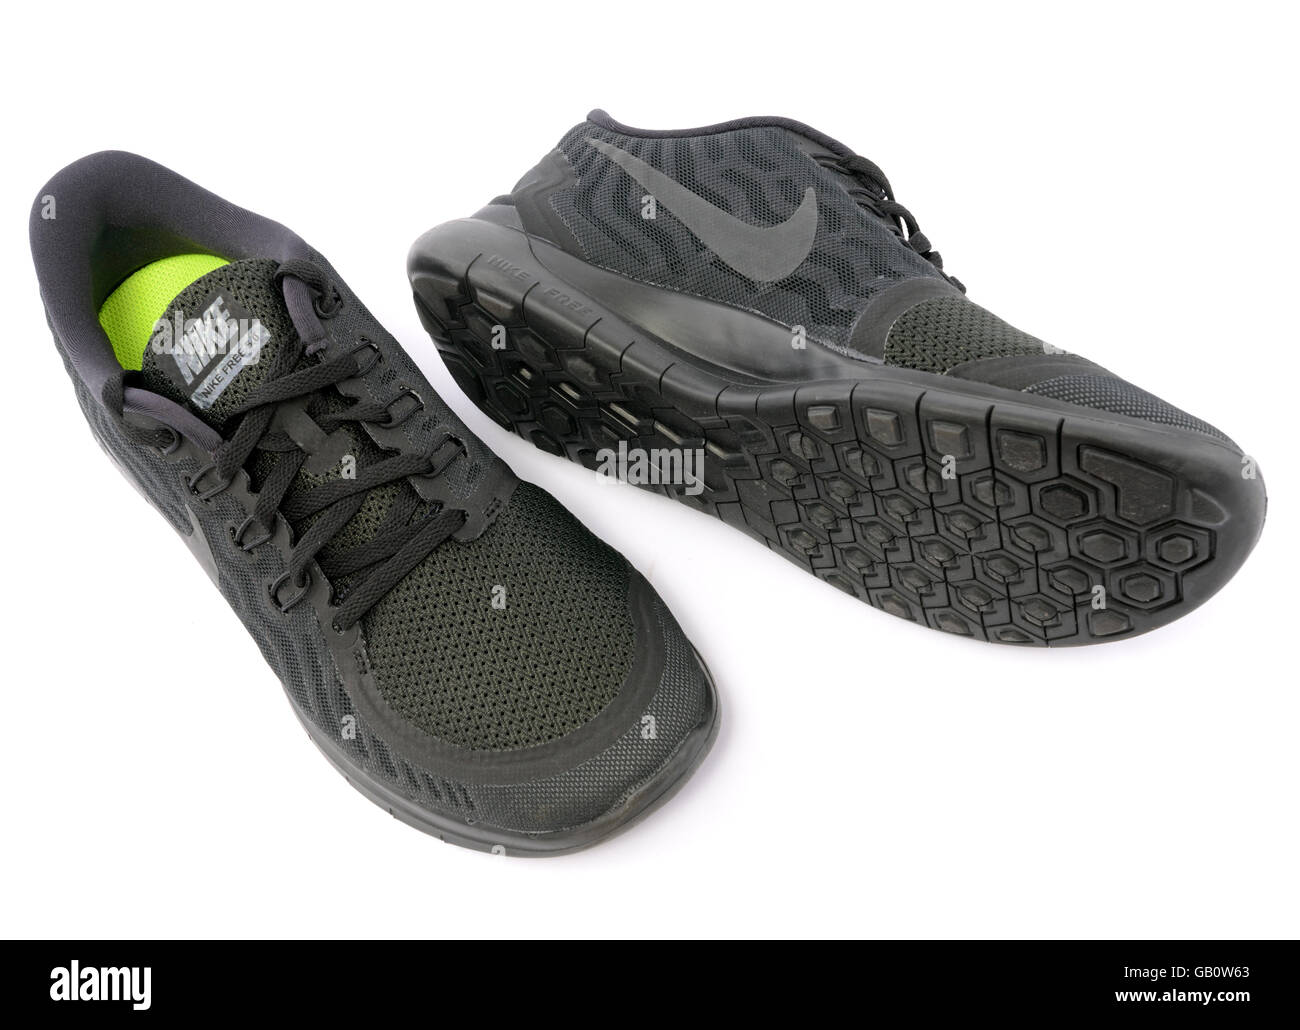 0f11633b295 ... Nike Free 5.0 Barefoot Ride black trainers isolated on white background SU15  NikeFree 3 0 Flyknit Lateral Square.